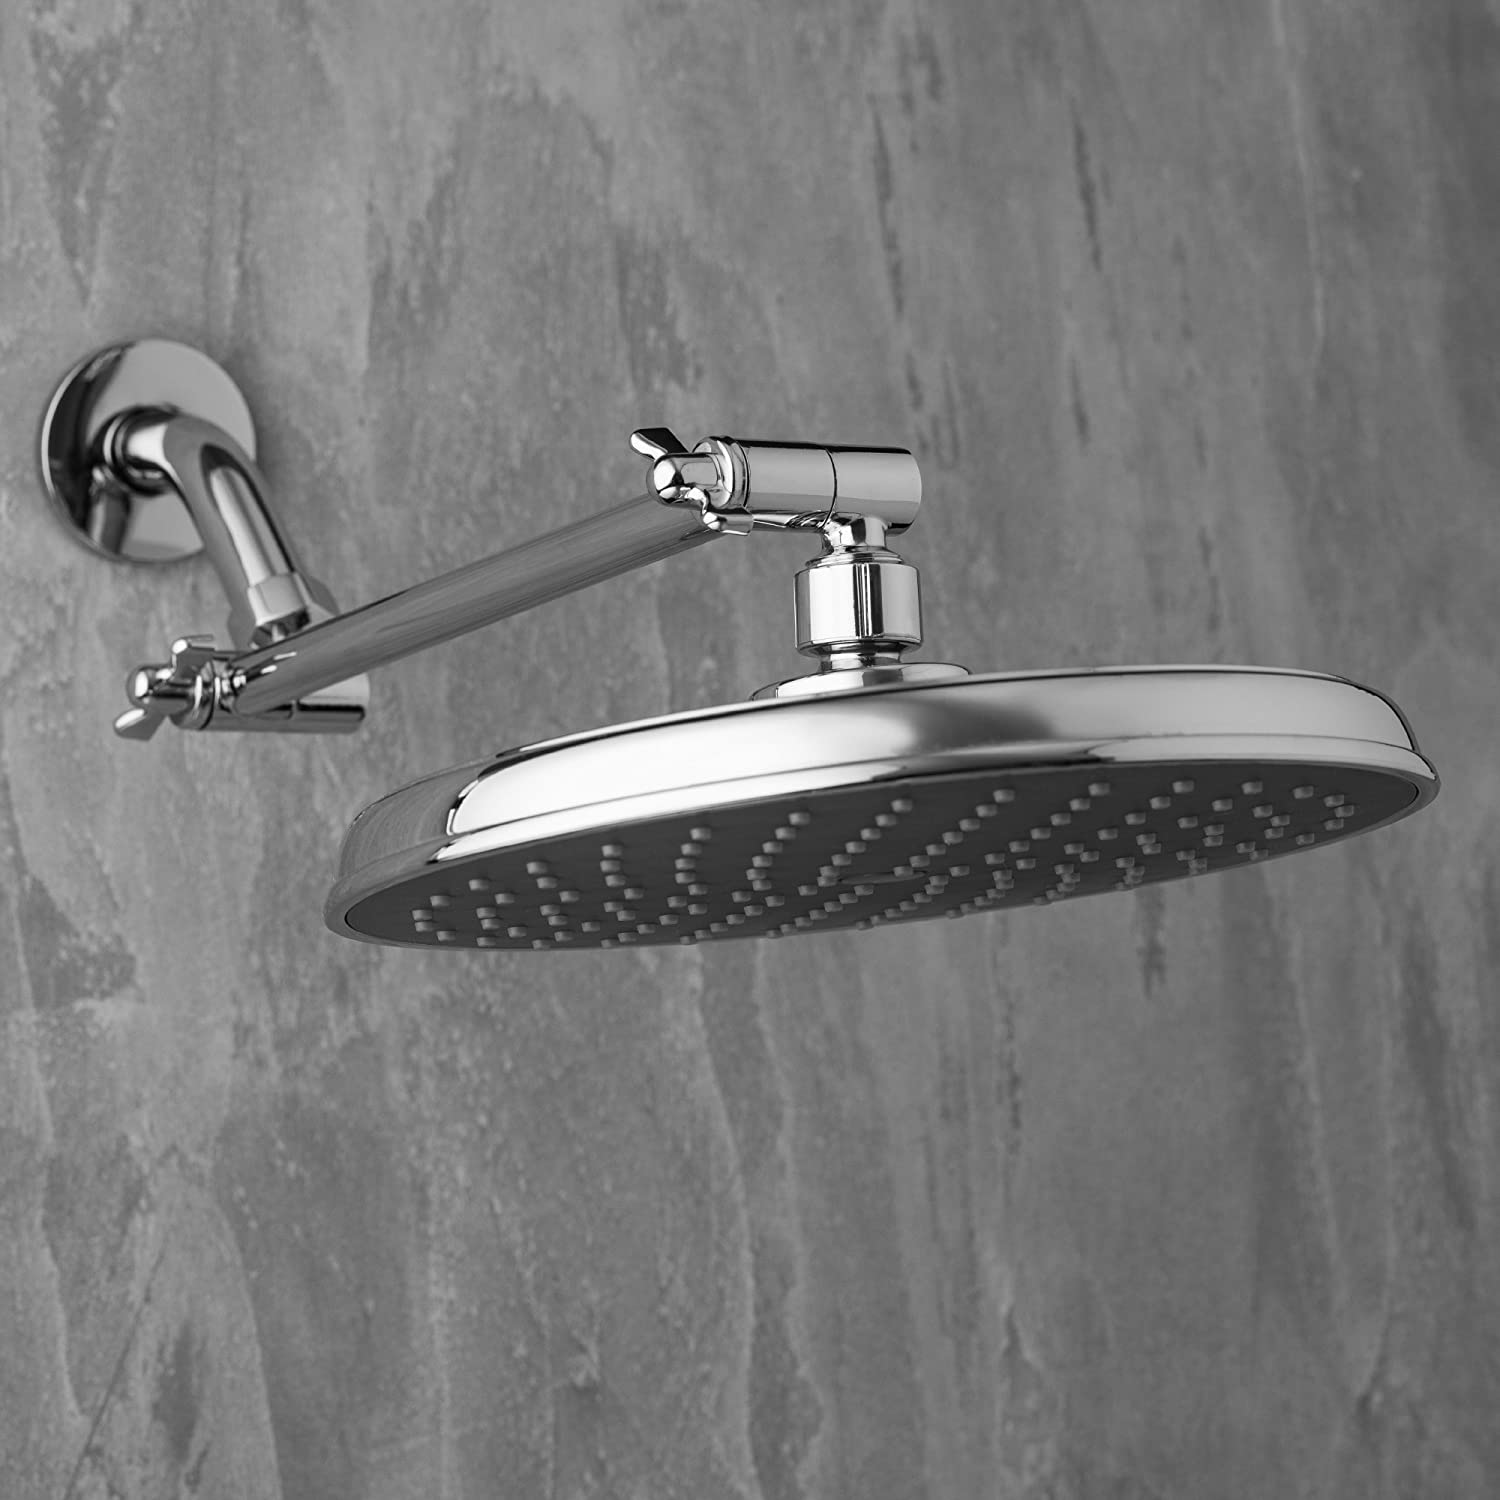 Showerhead Body Sprays | Amazon.com | Kitchen & Bath Fixtures ...